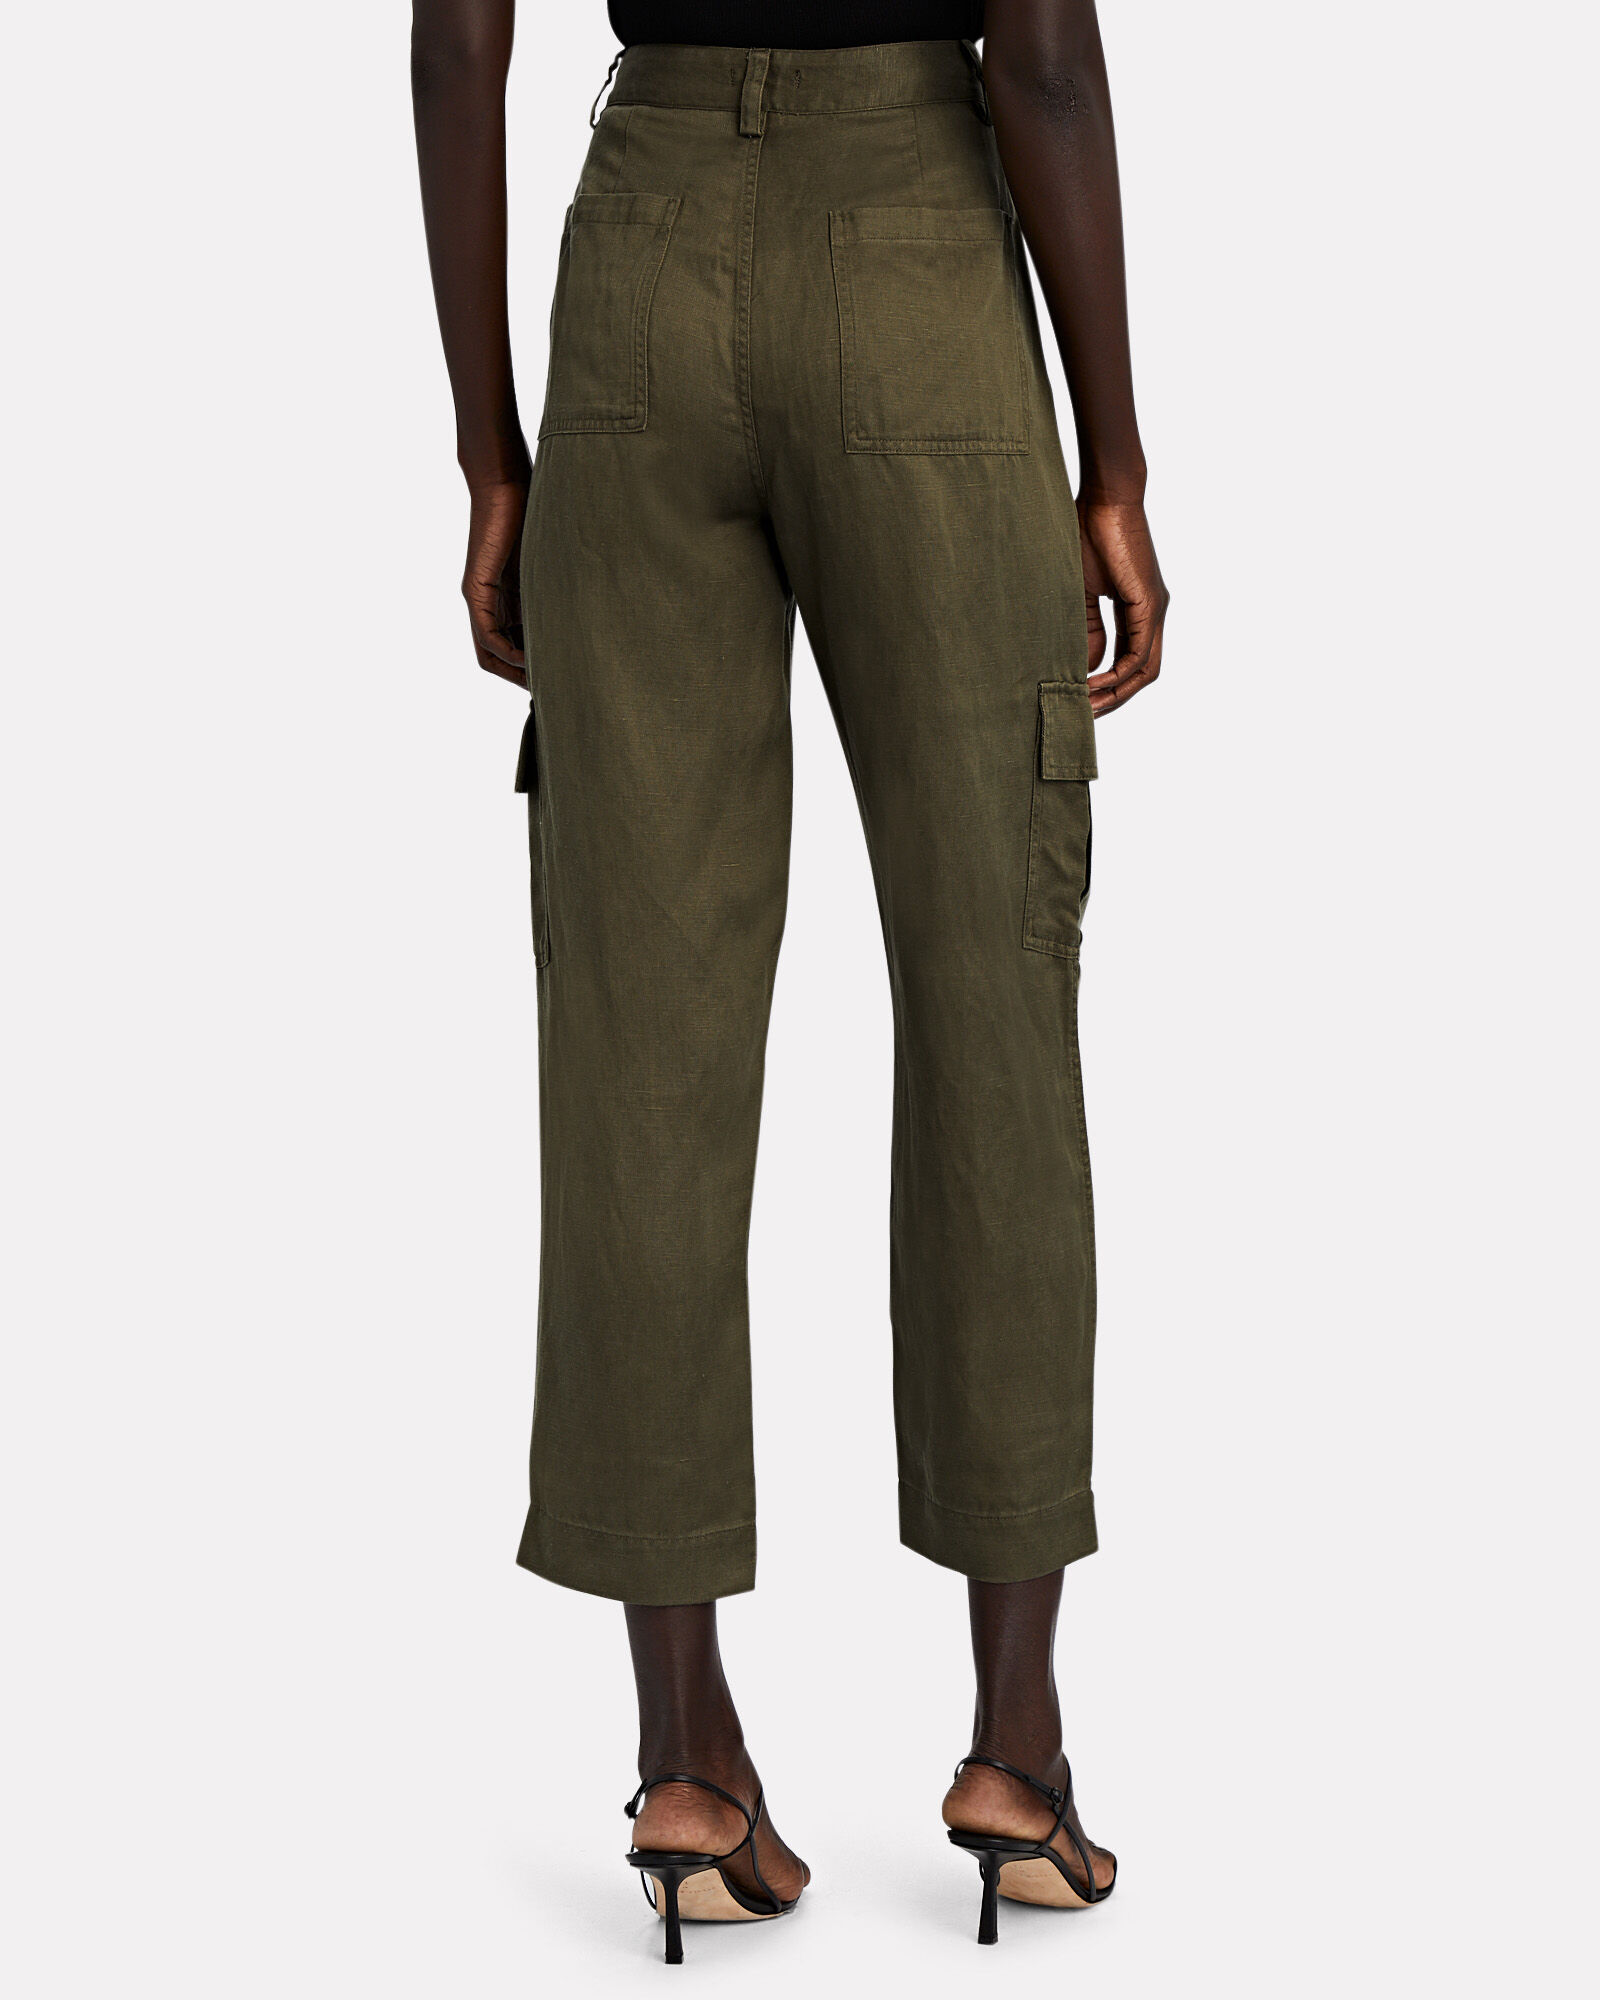 Straight-Leg Cargo Pants, OLIVE/ARMY, hi-res